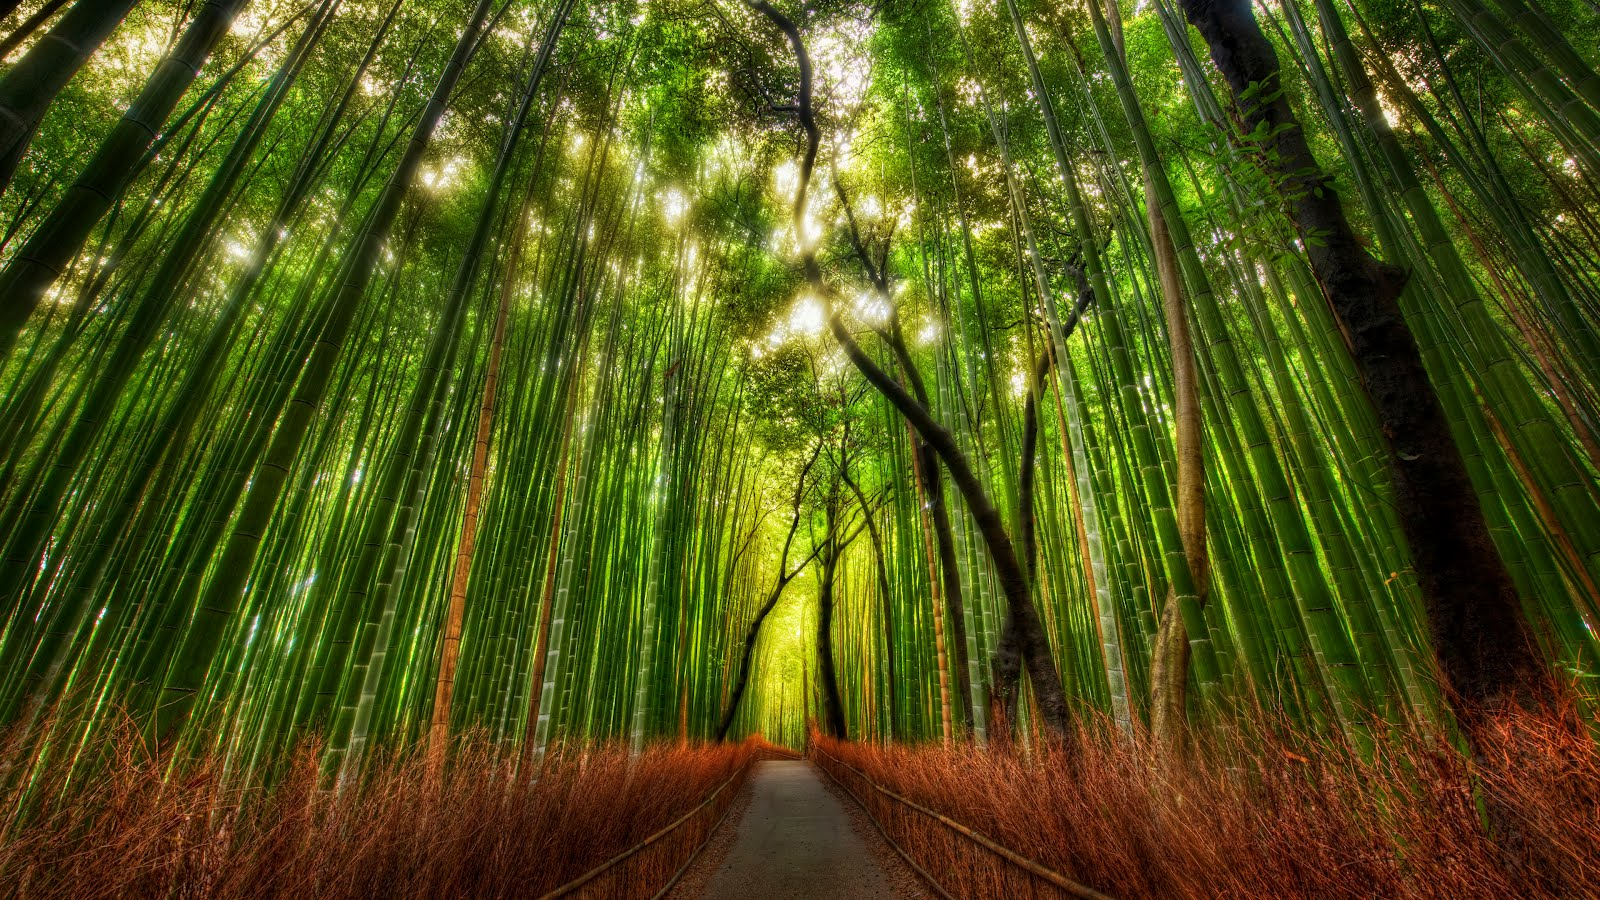 wallpaper collections bamboo forest hd wallpaper